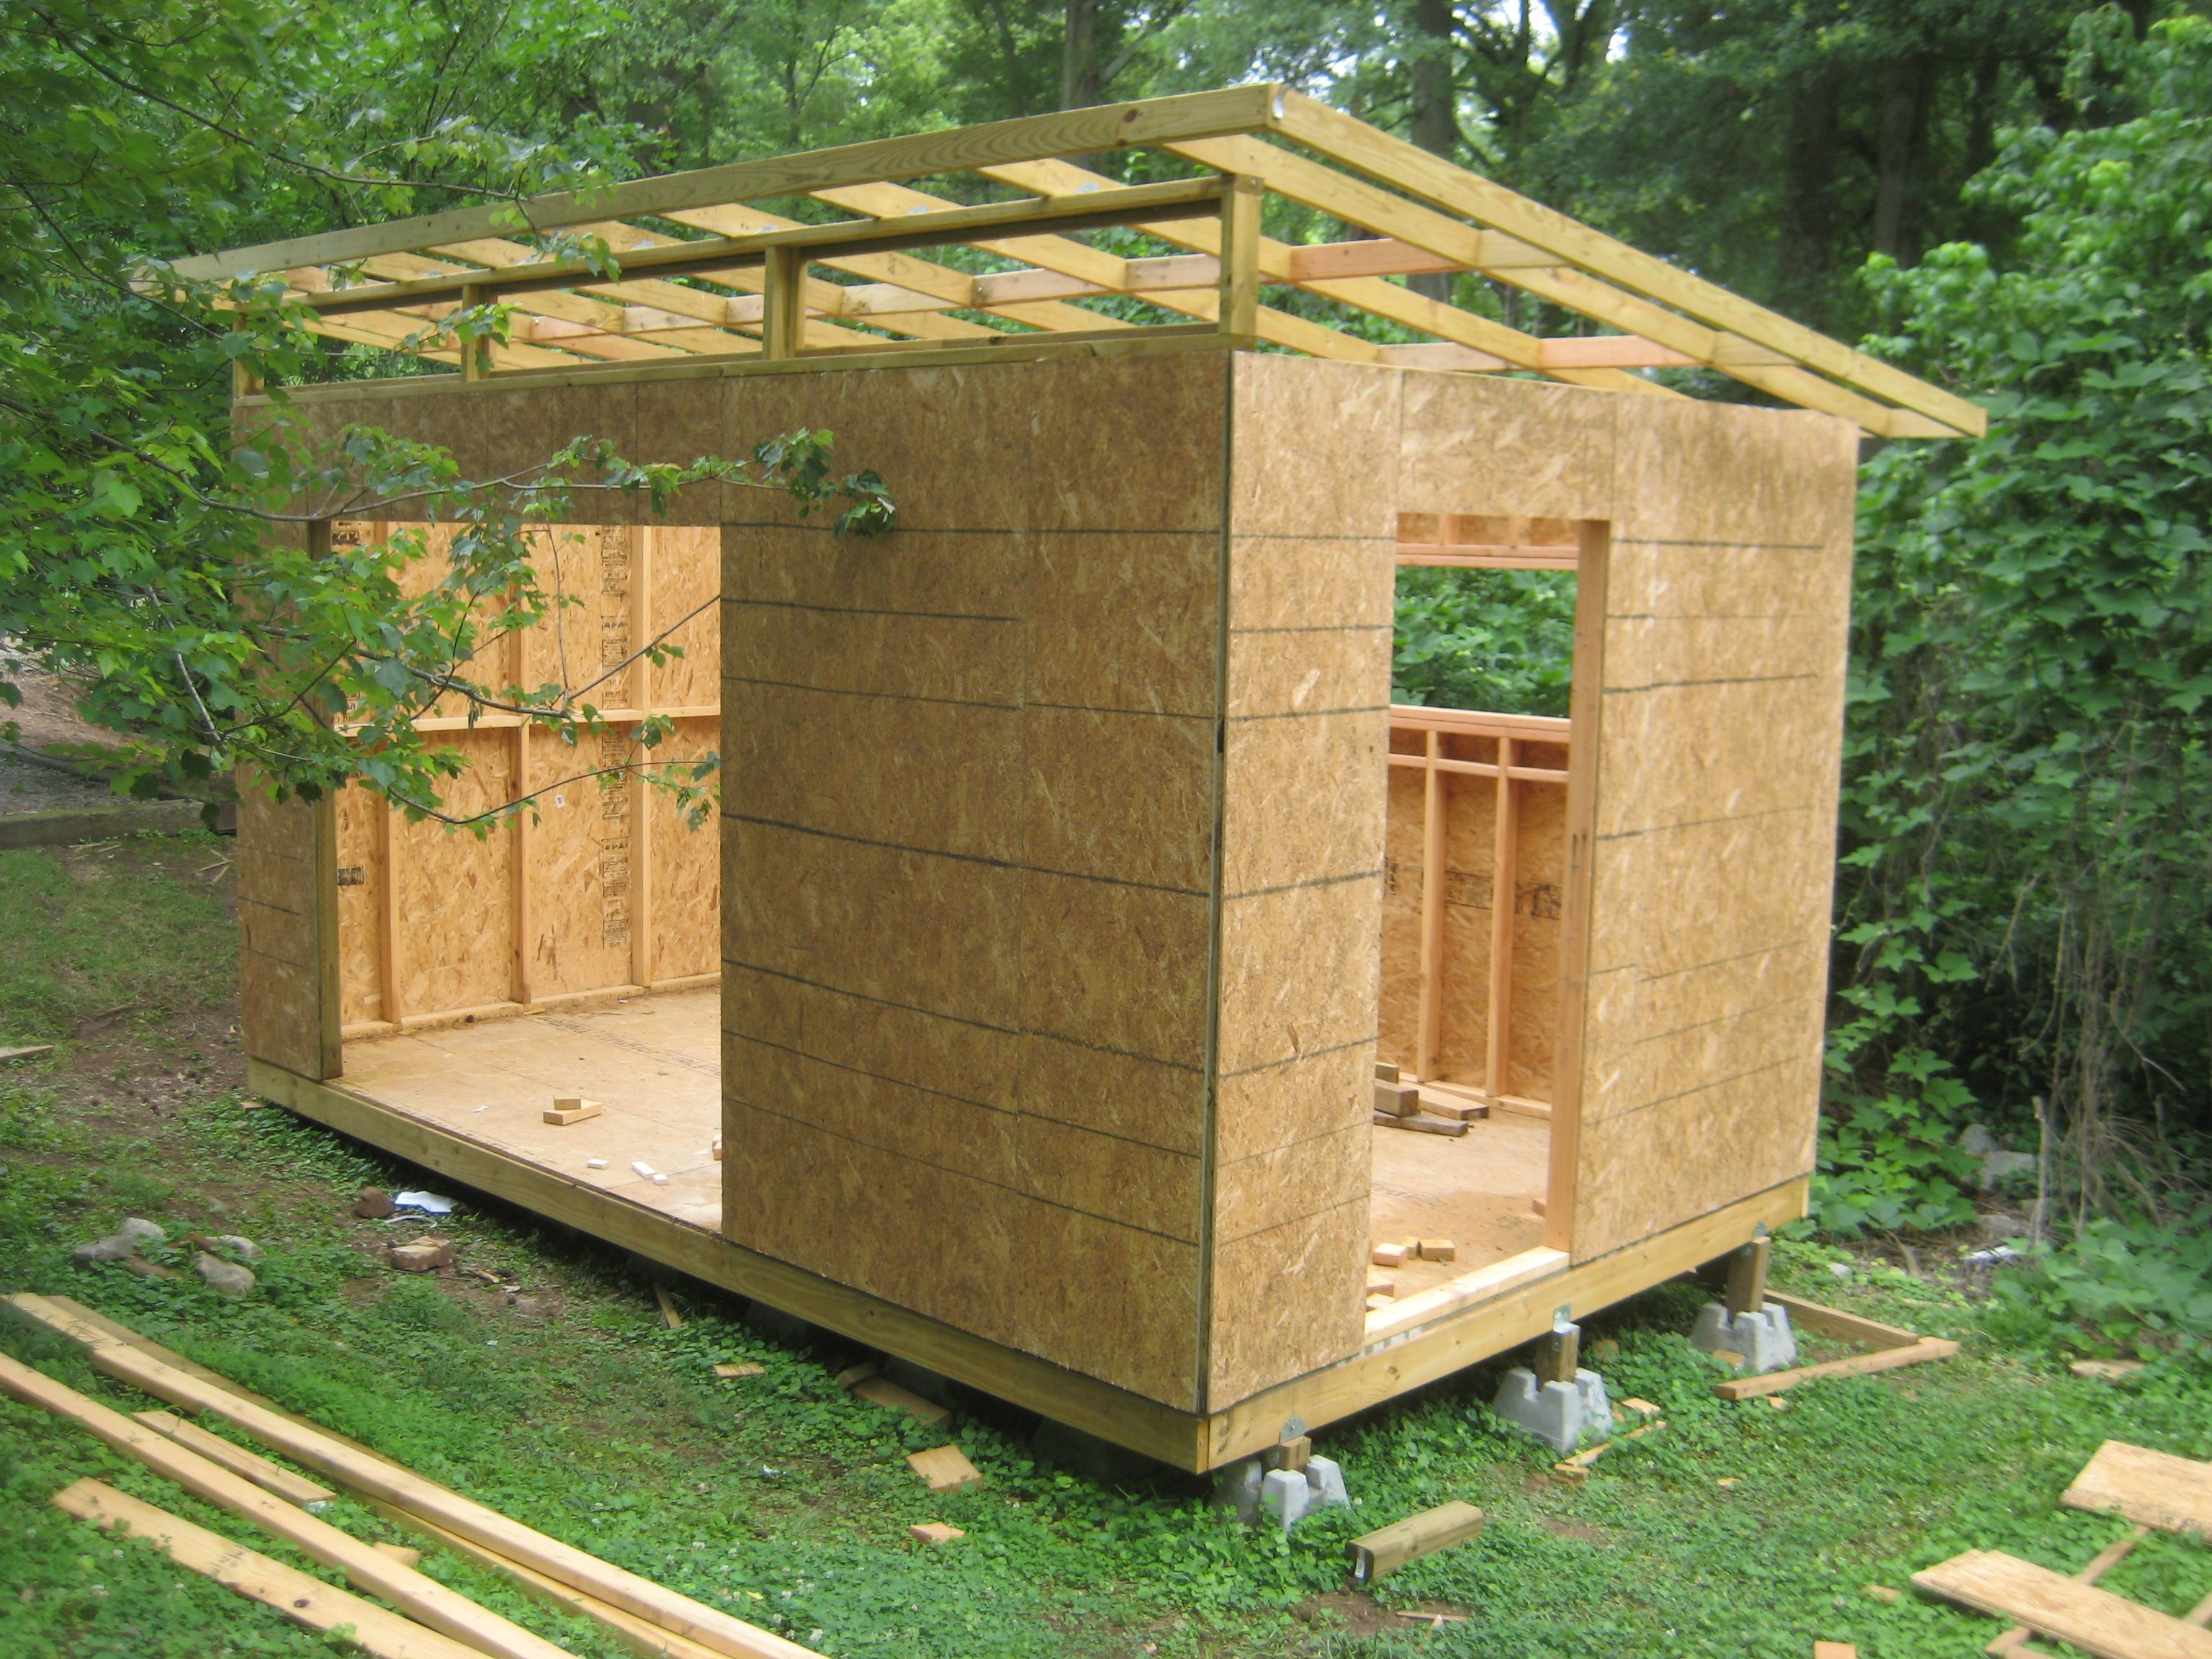 Complete shed plans are now available check out the latest post on diyatlantamodern here i just completed the first phase of my shed project